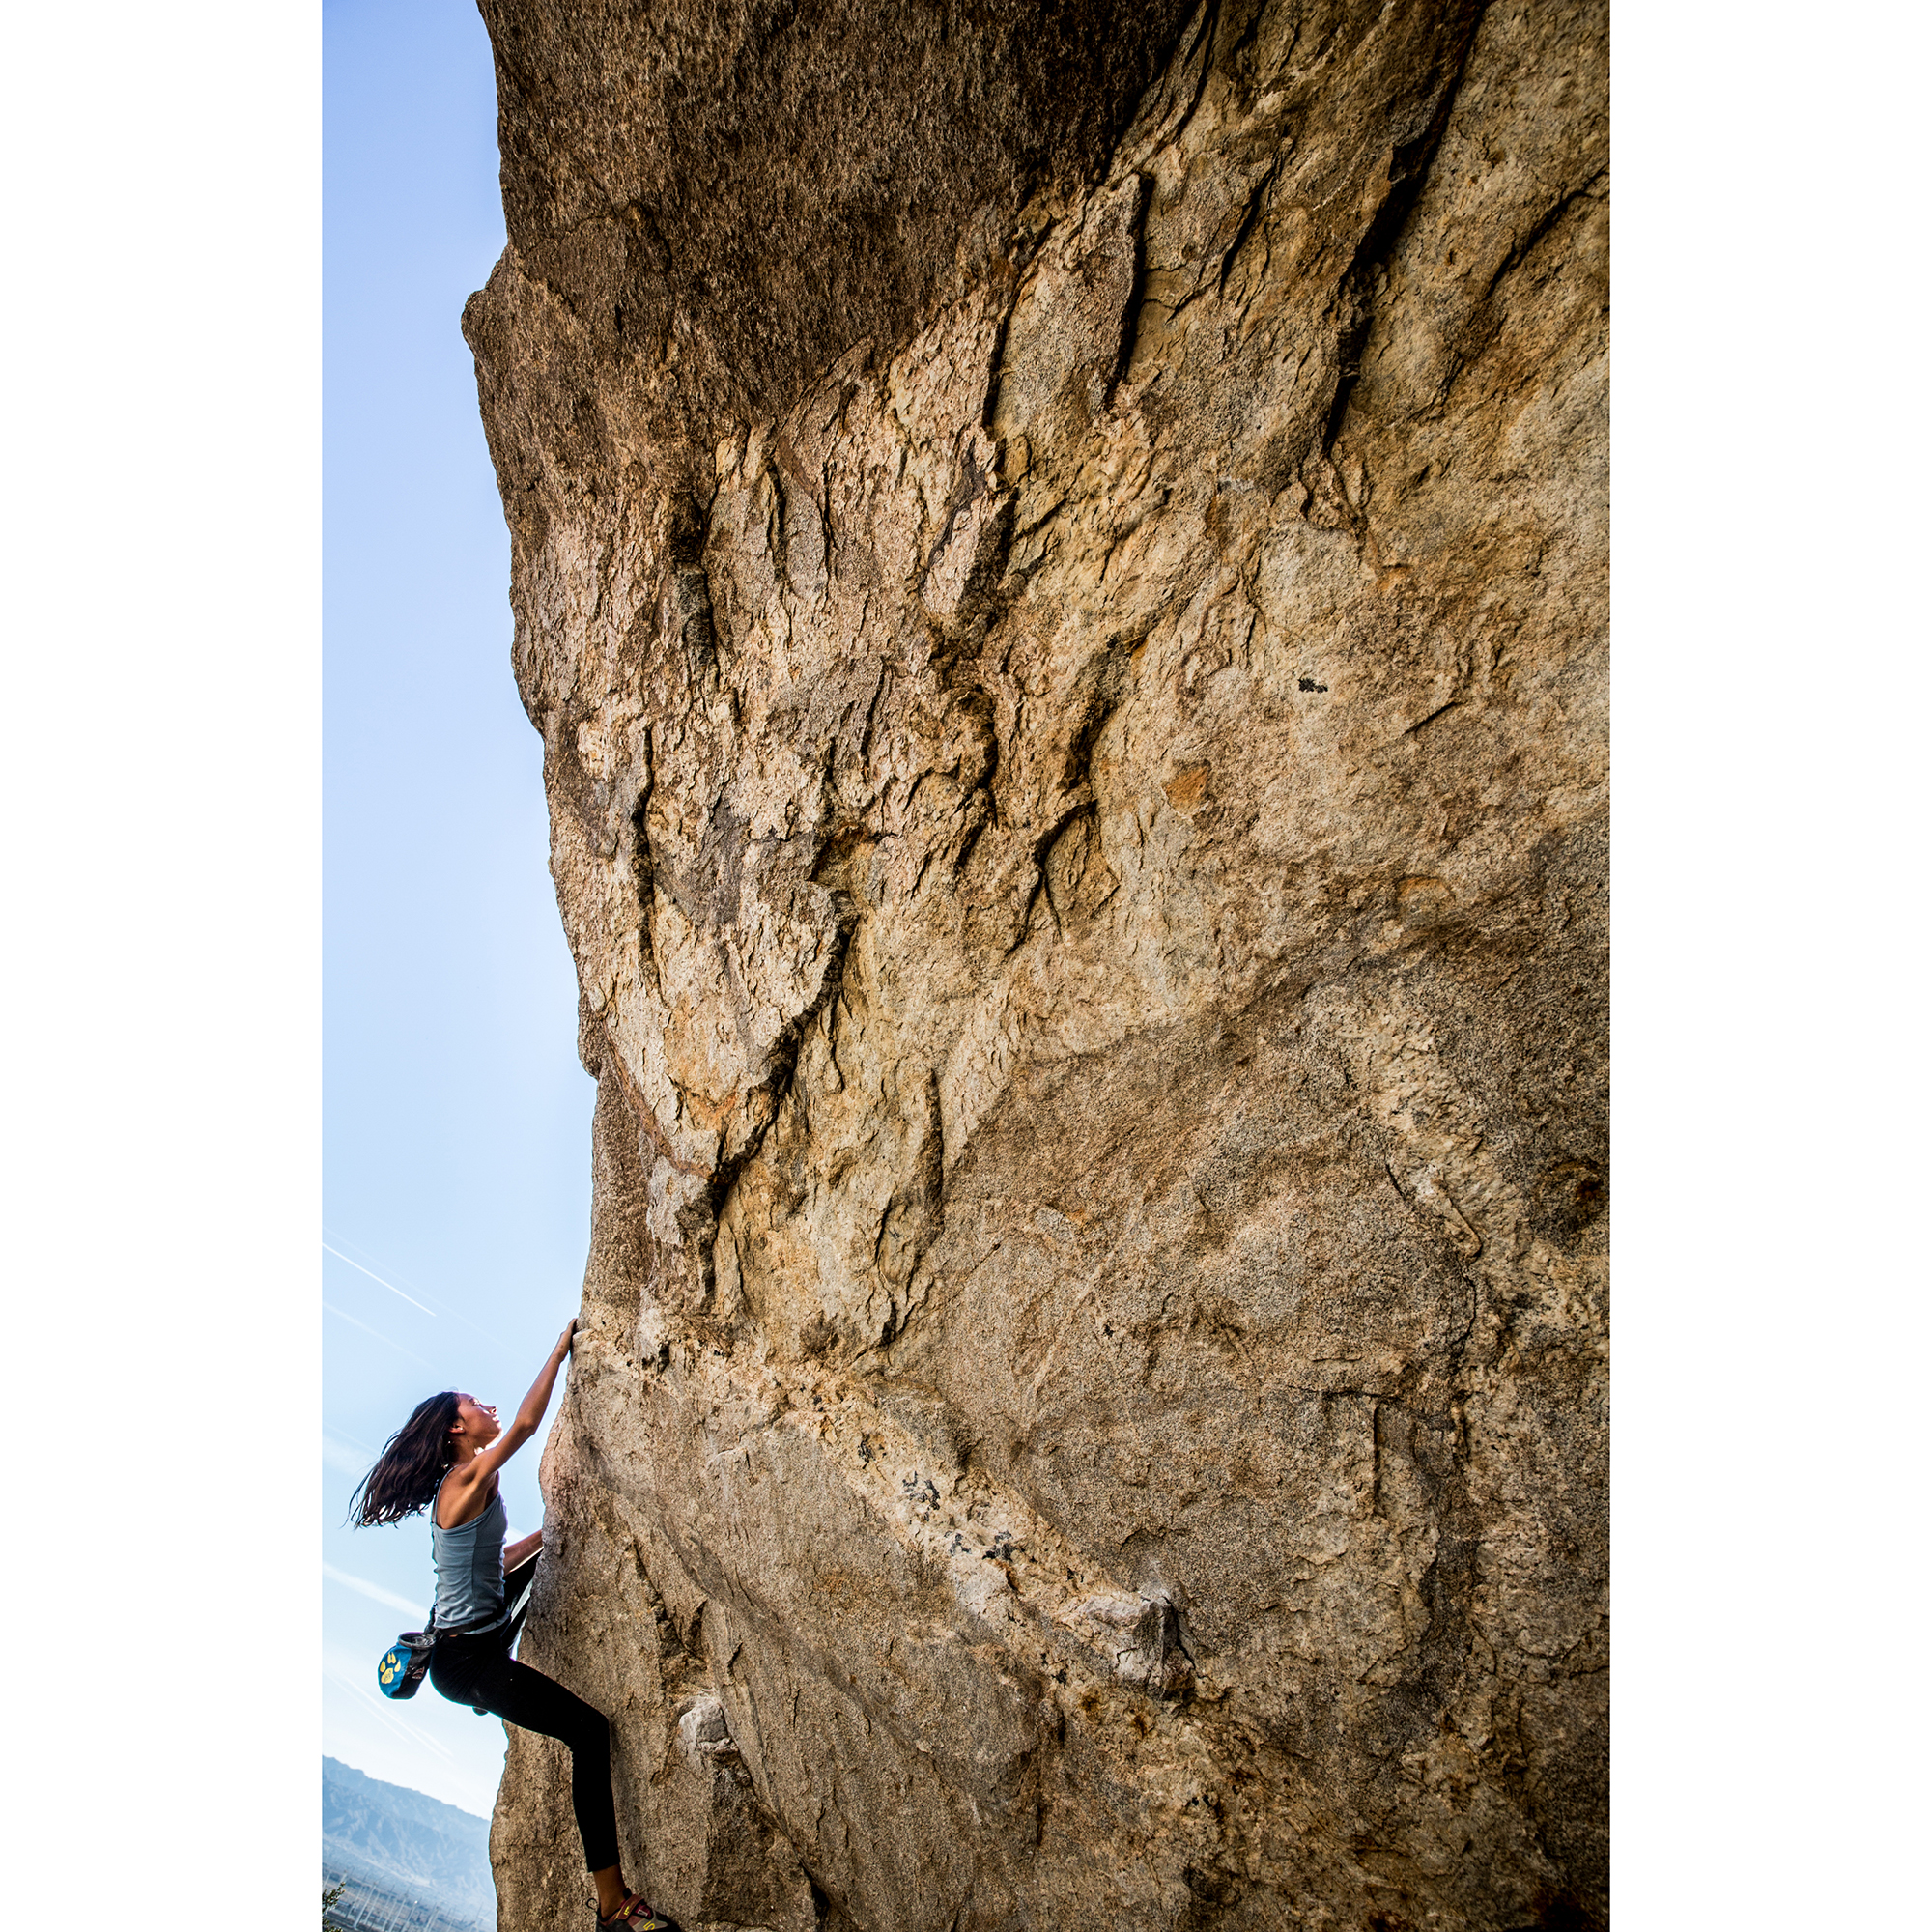 ROCK CLIMBING  COMMERCIAL ADVERTISING PHOTOGRAPHY - VERDICT DIGITAL LOS ANGELES SAN FRANCISCO OAKLAND